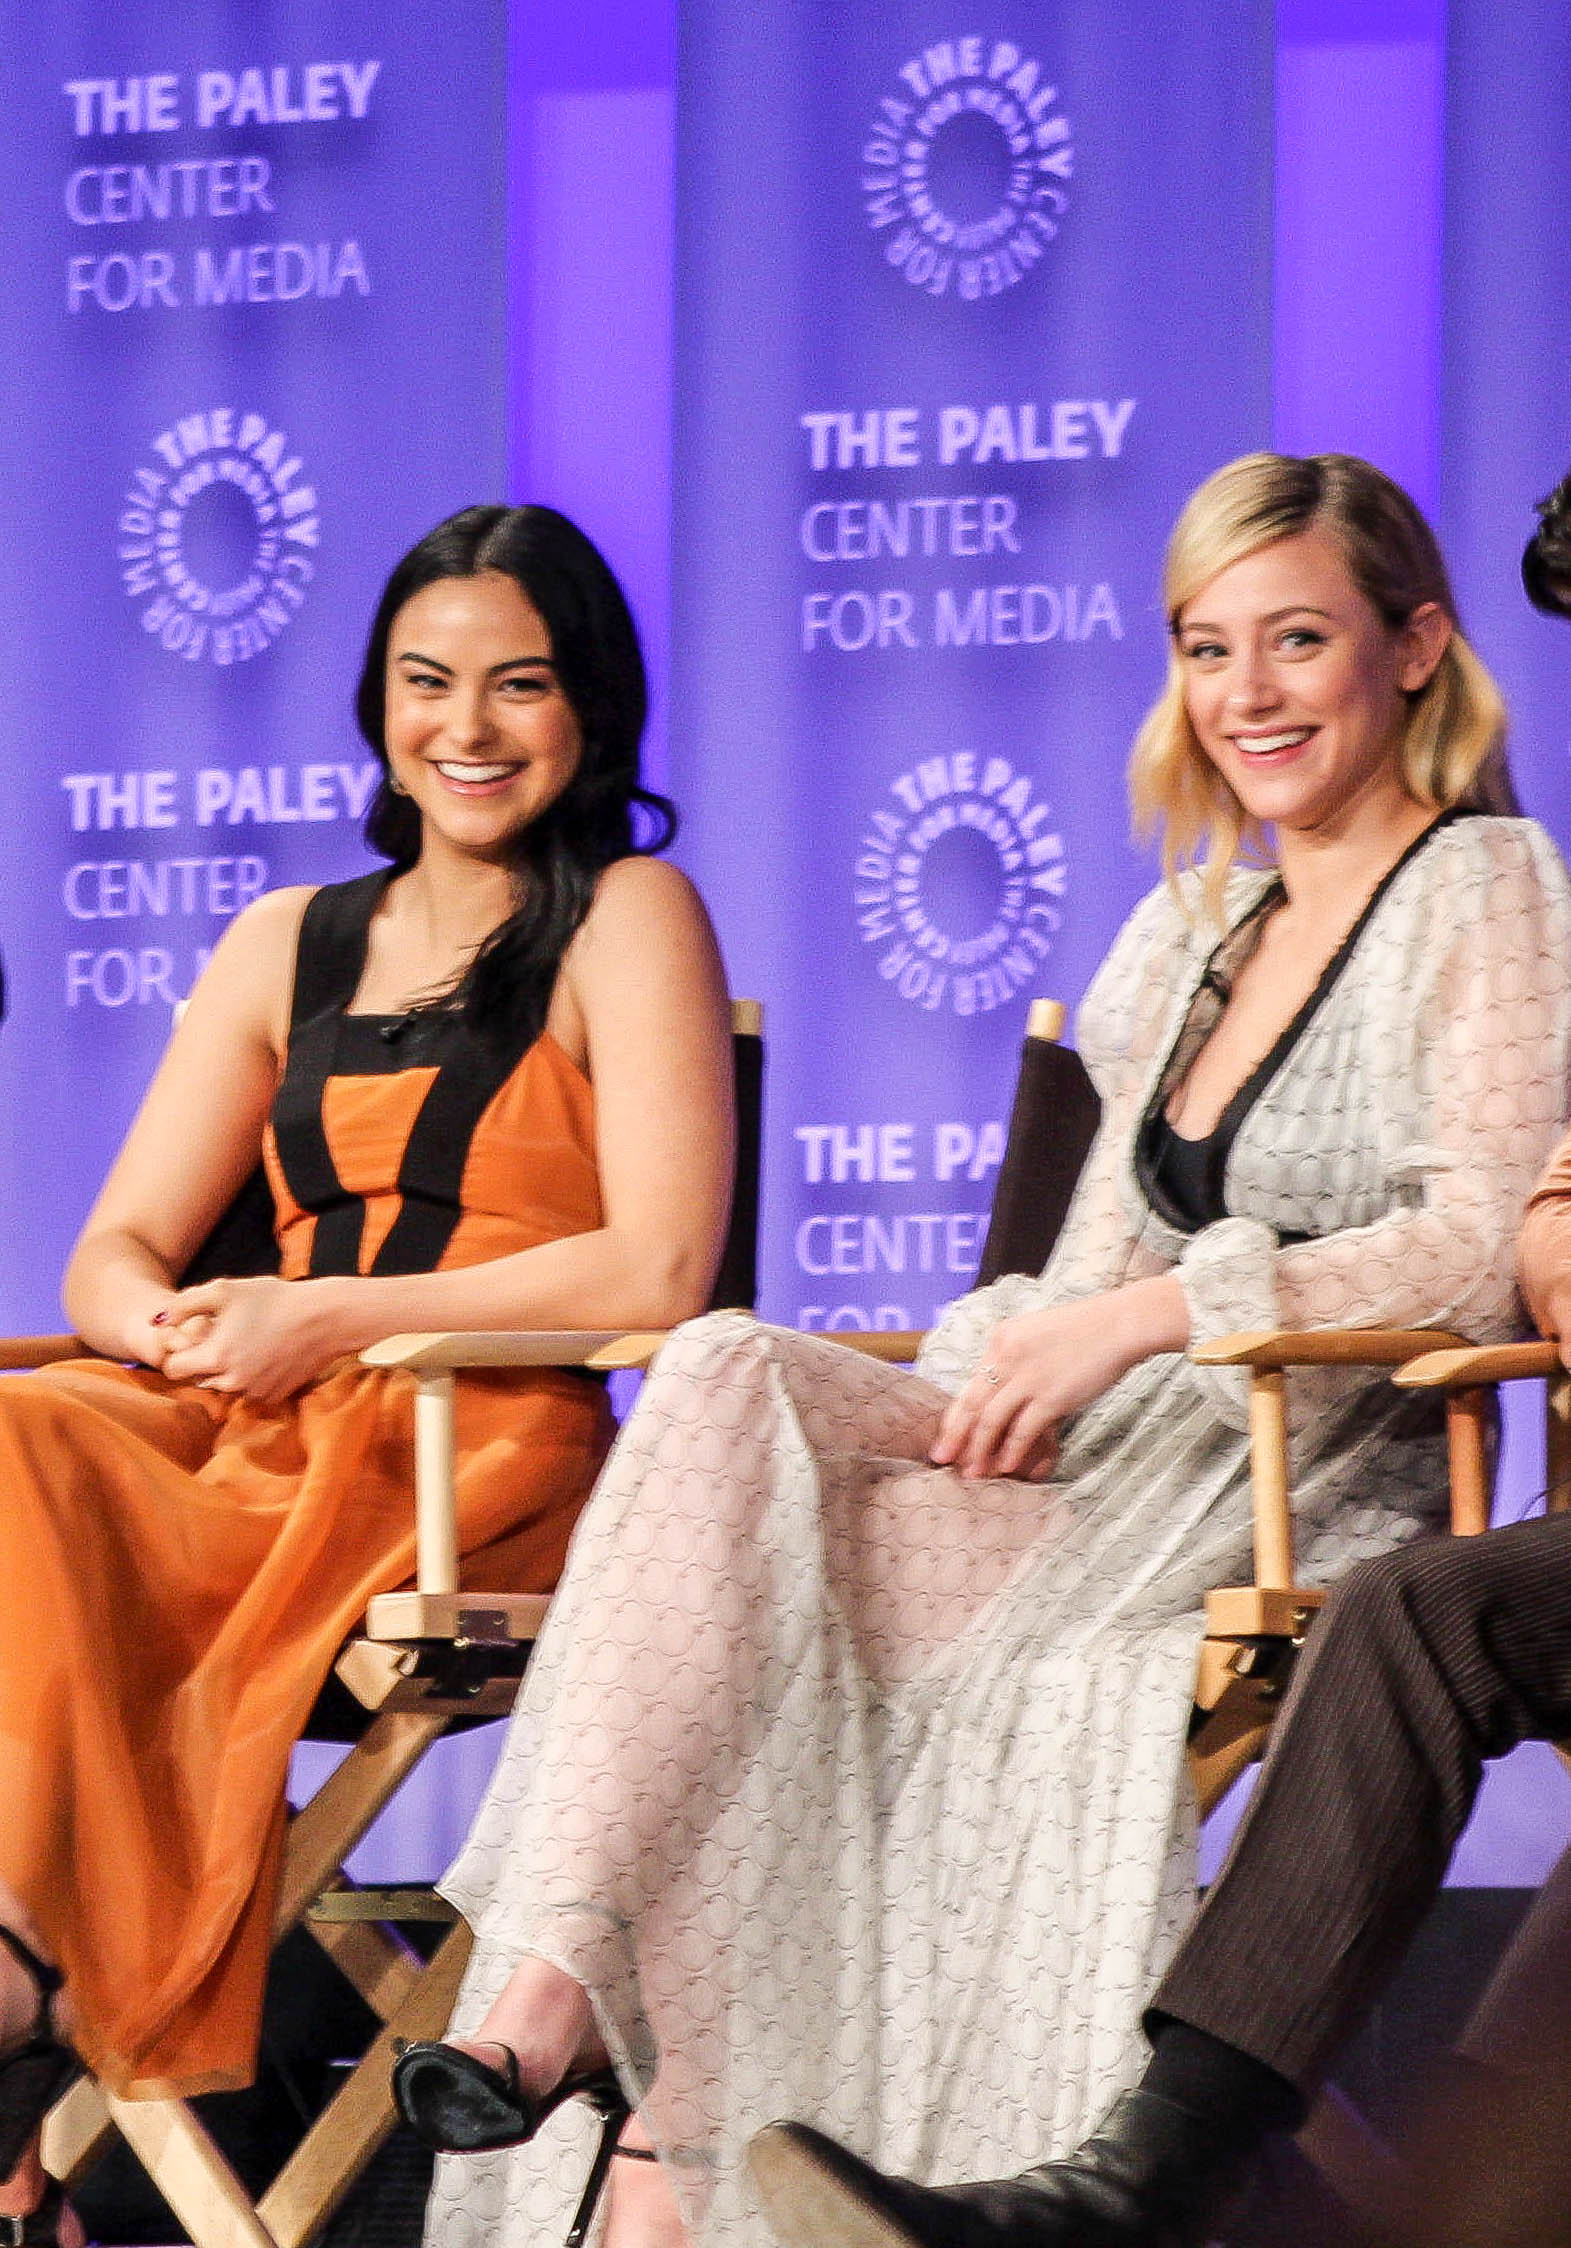 from left to right: Camila Mendes (Veronica), and Lili Reinhart (Betty)